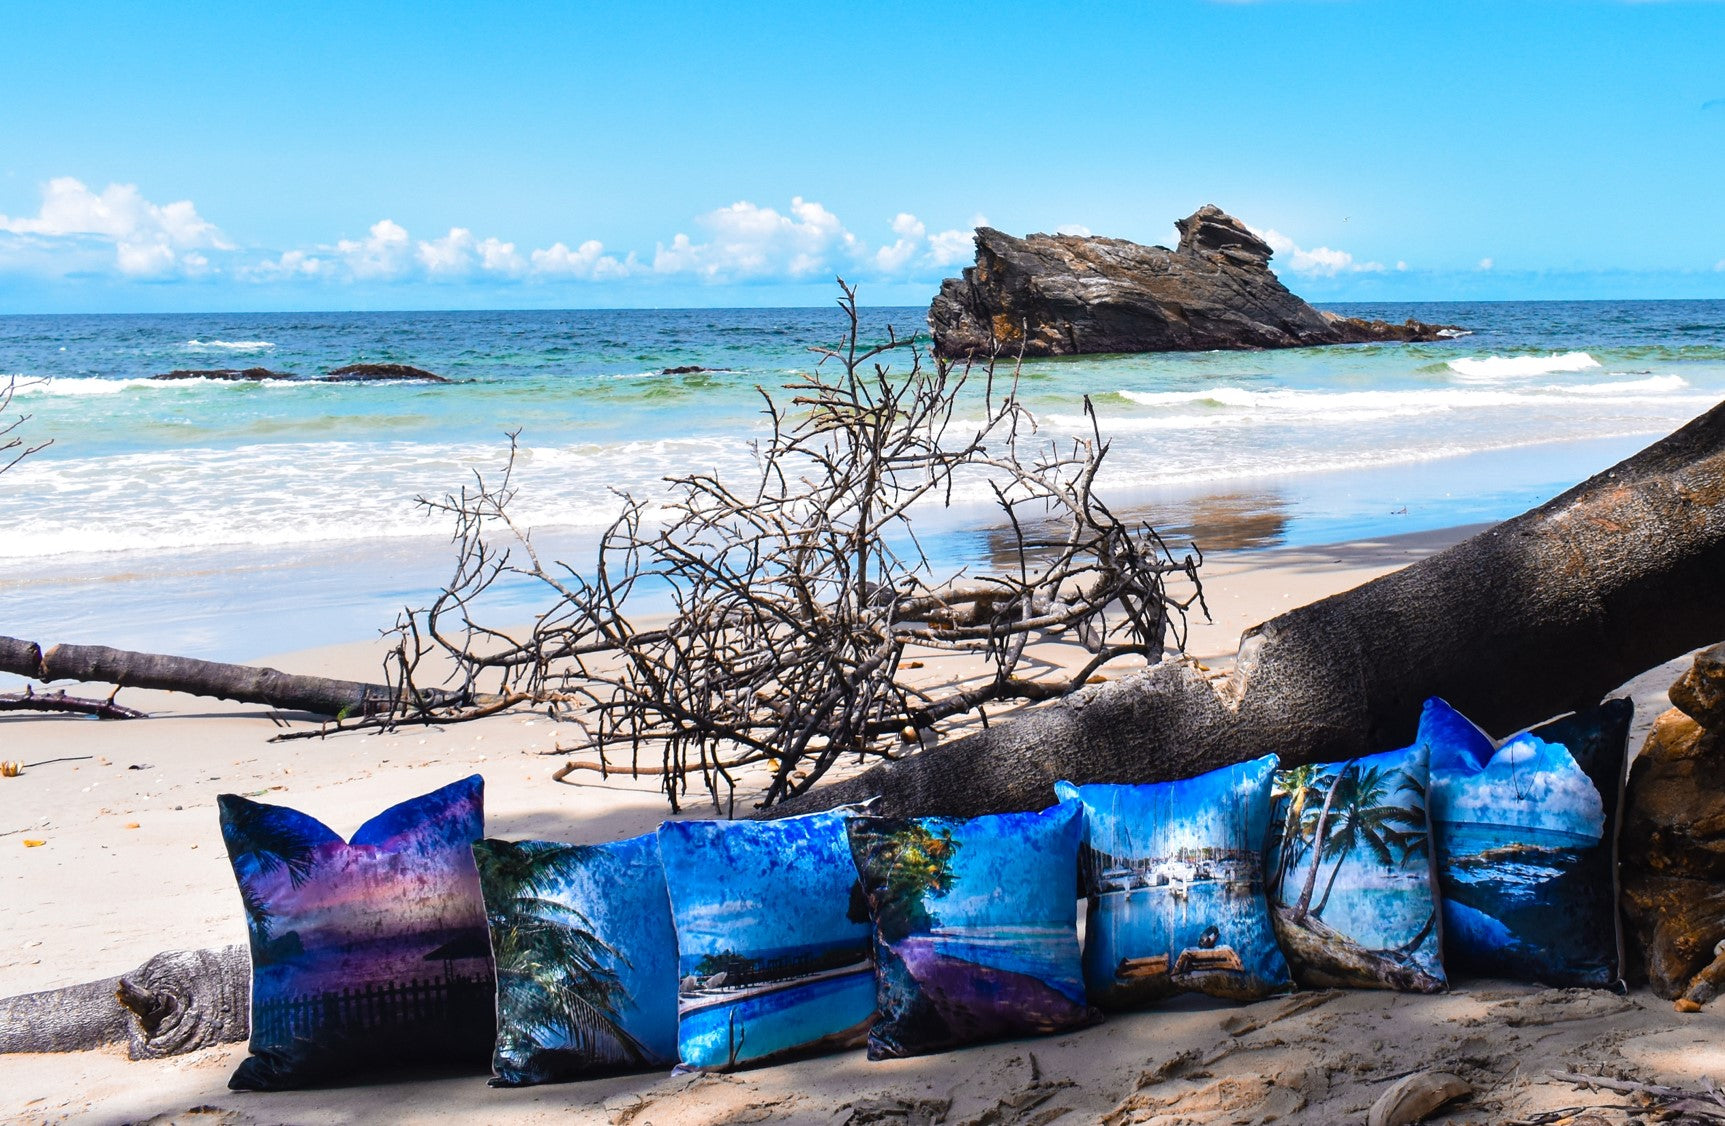 Beached Boats at Maracas Fishing Village Throw Pillow Cover